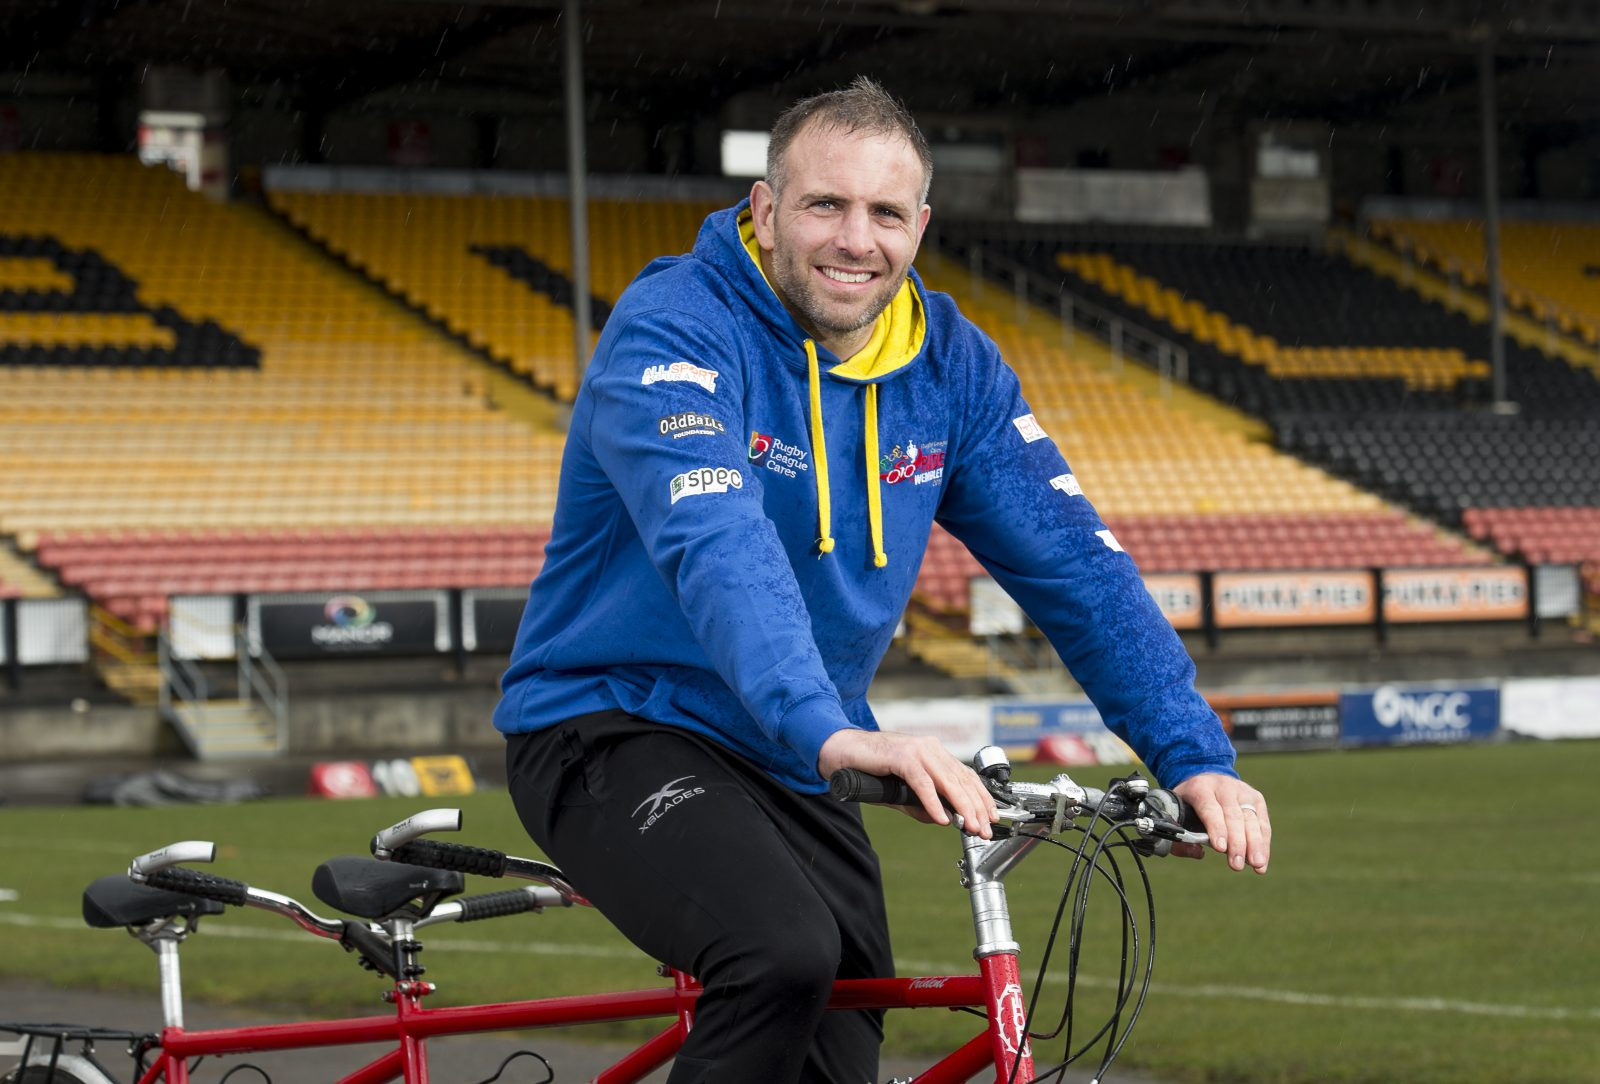 Andy Lynch joins the Ride to Wembley